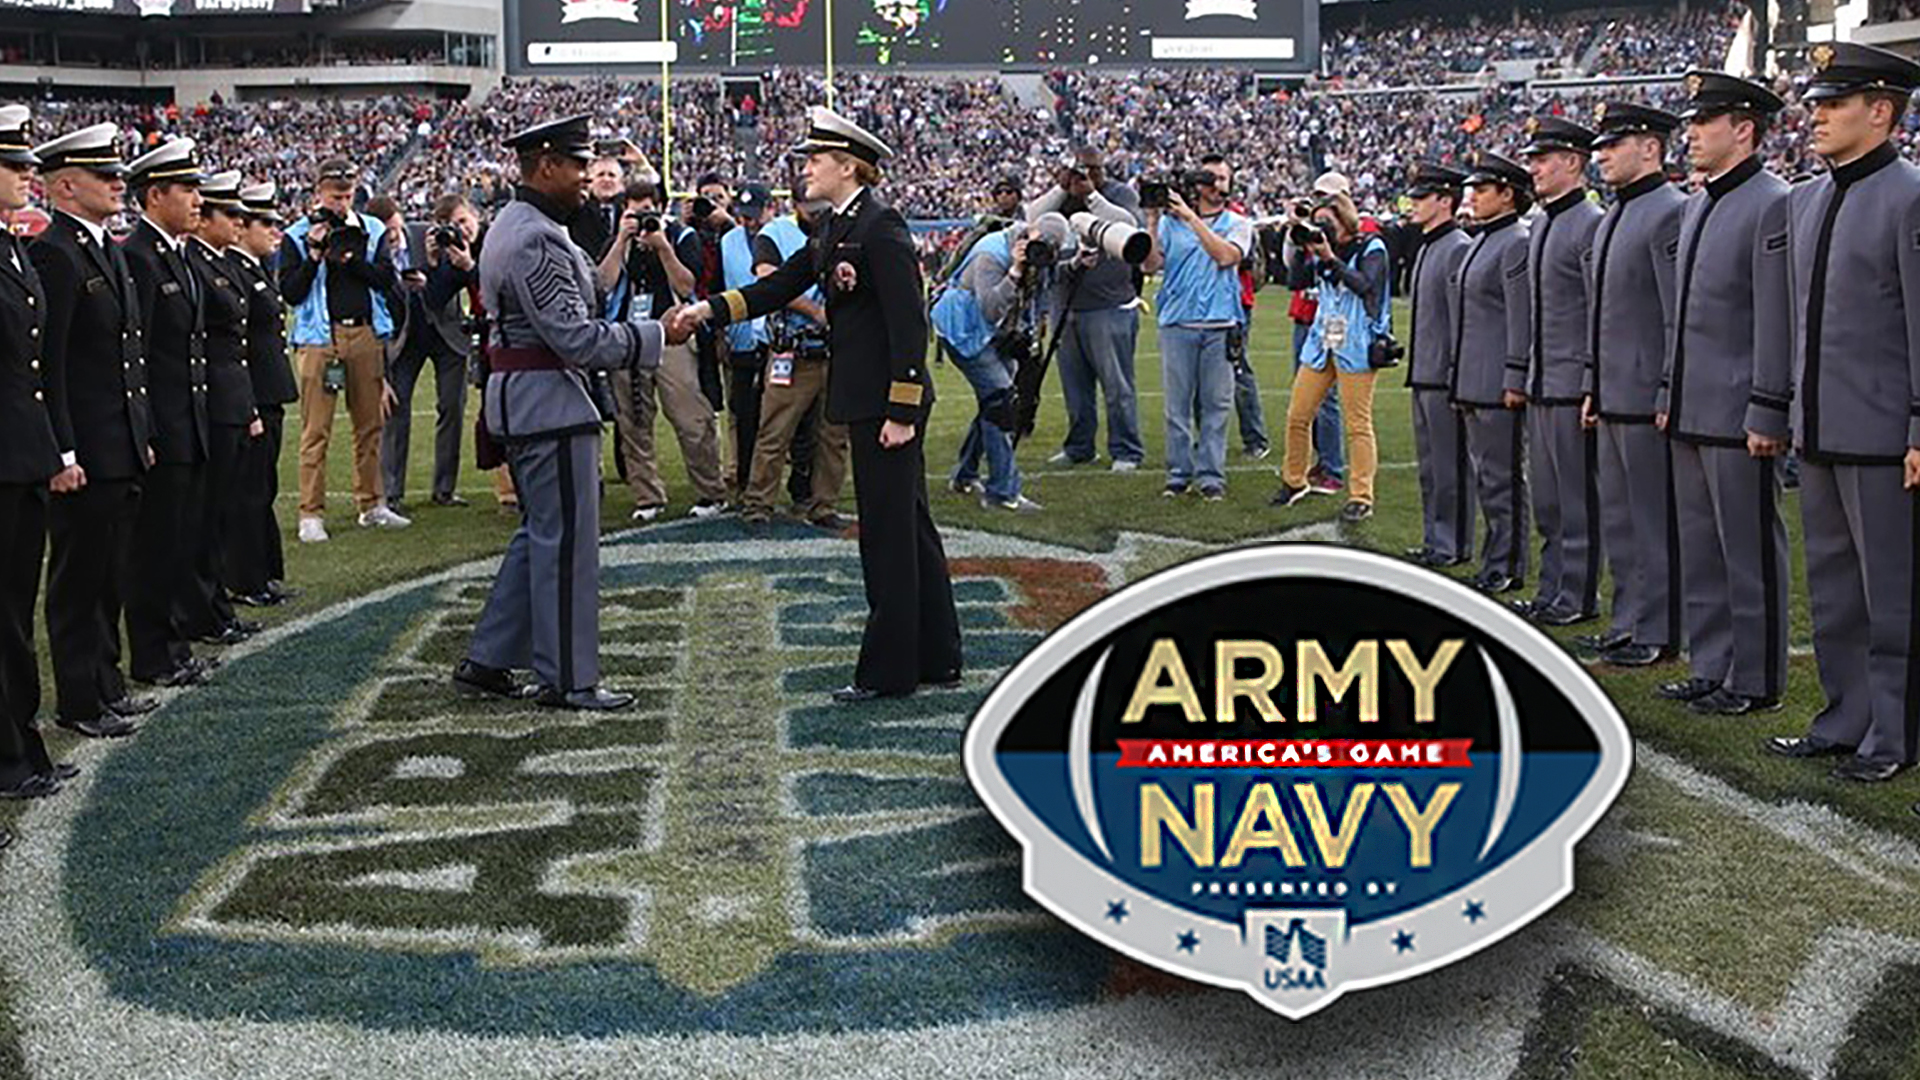 Army Navy Game What Channel >> Army Navy Weekend Schedule Of Events Army Navy Game